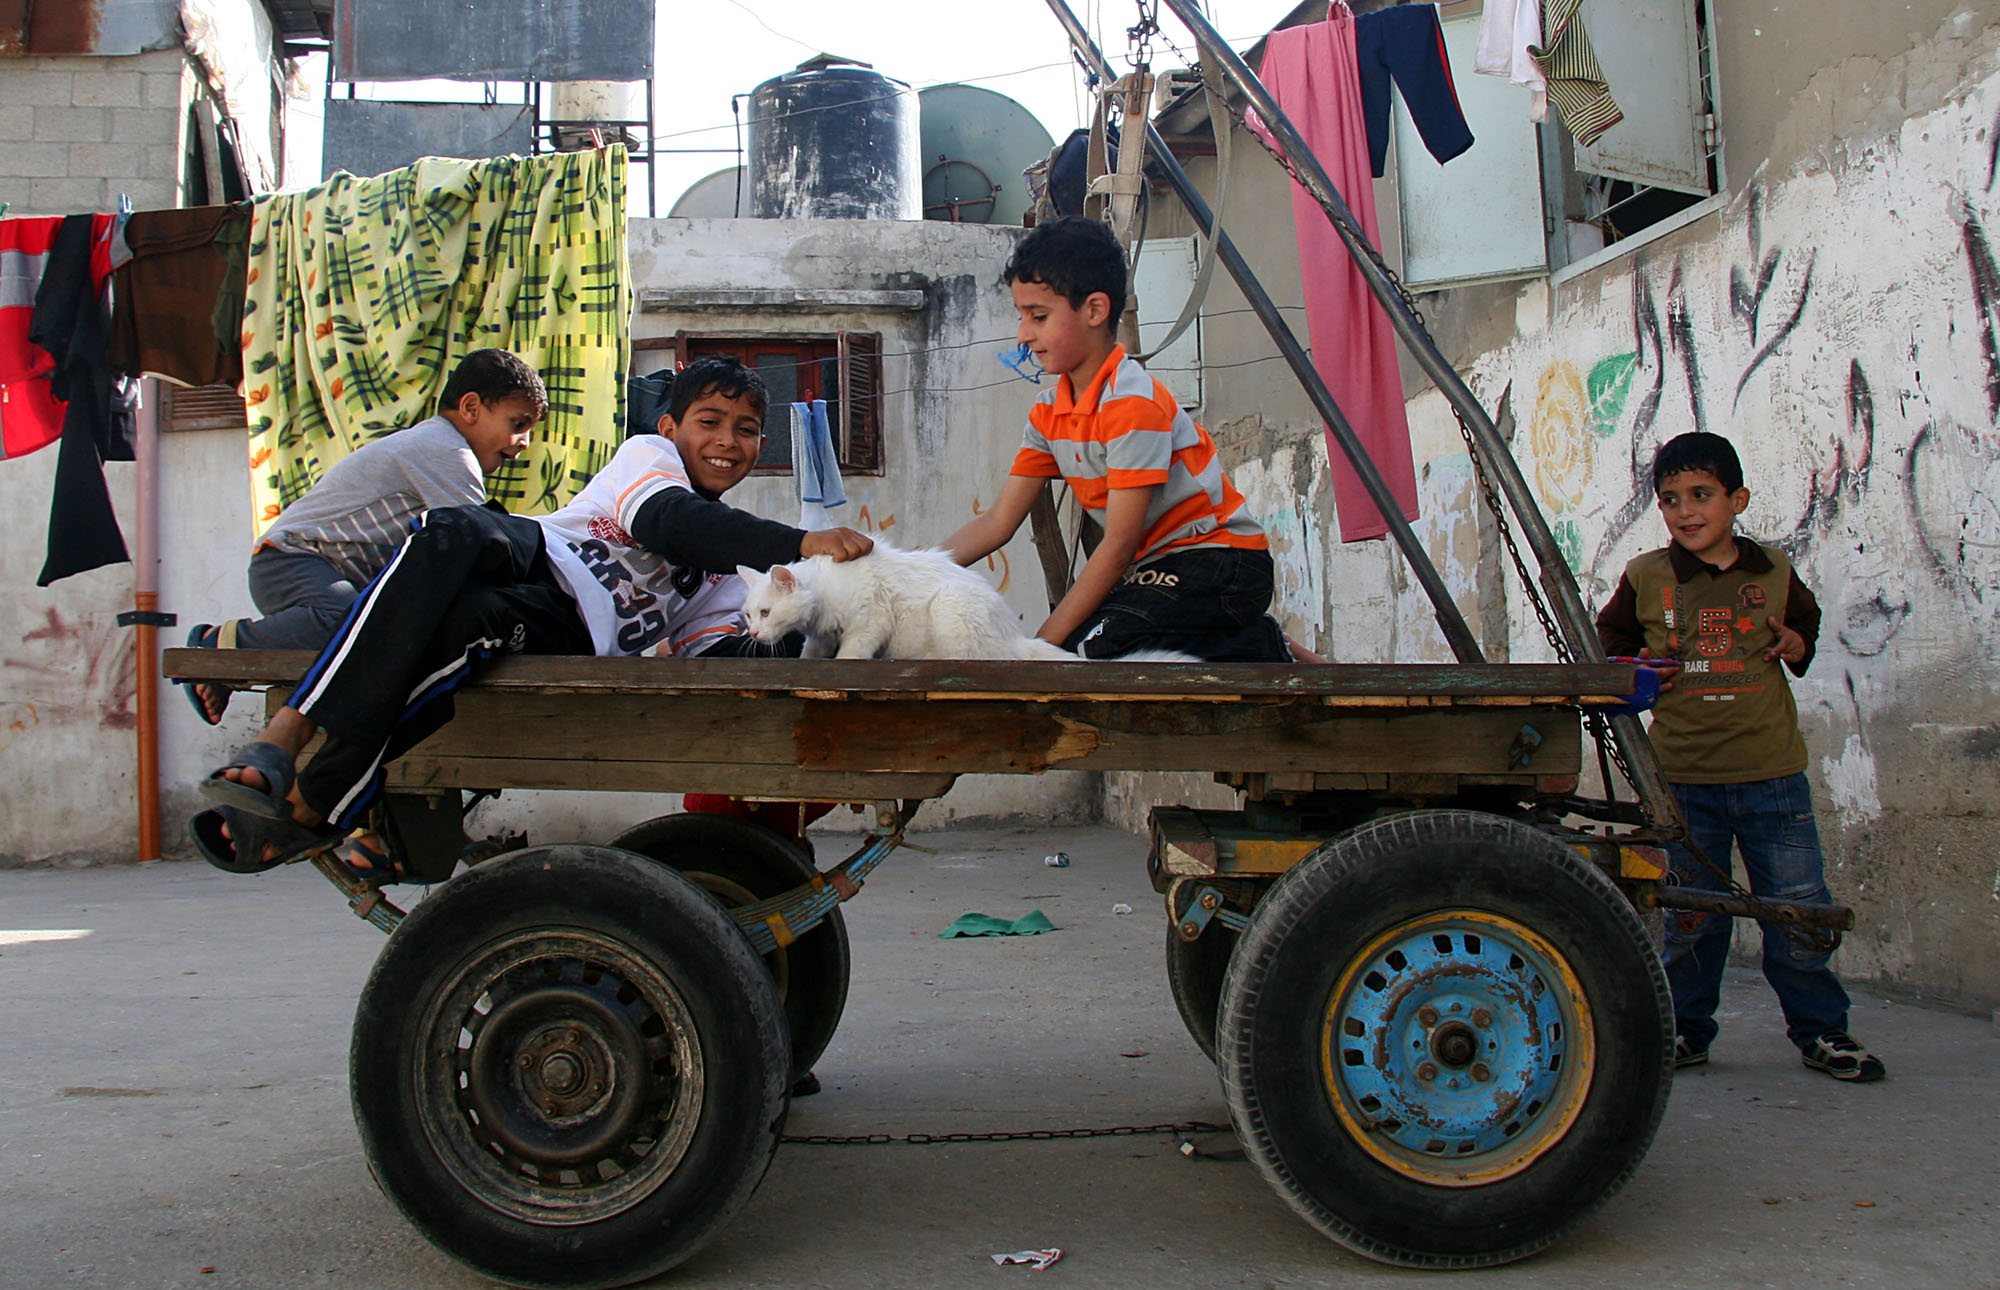 Palestinian refugee children play on a cart outside their houses in Jabalia refugee camps, north the Gaza strip